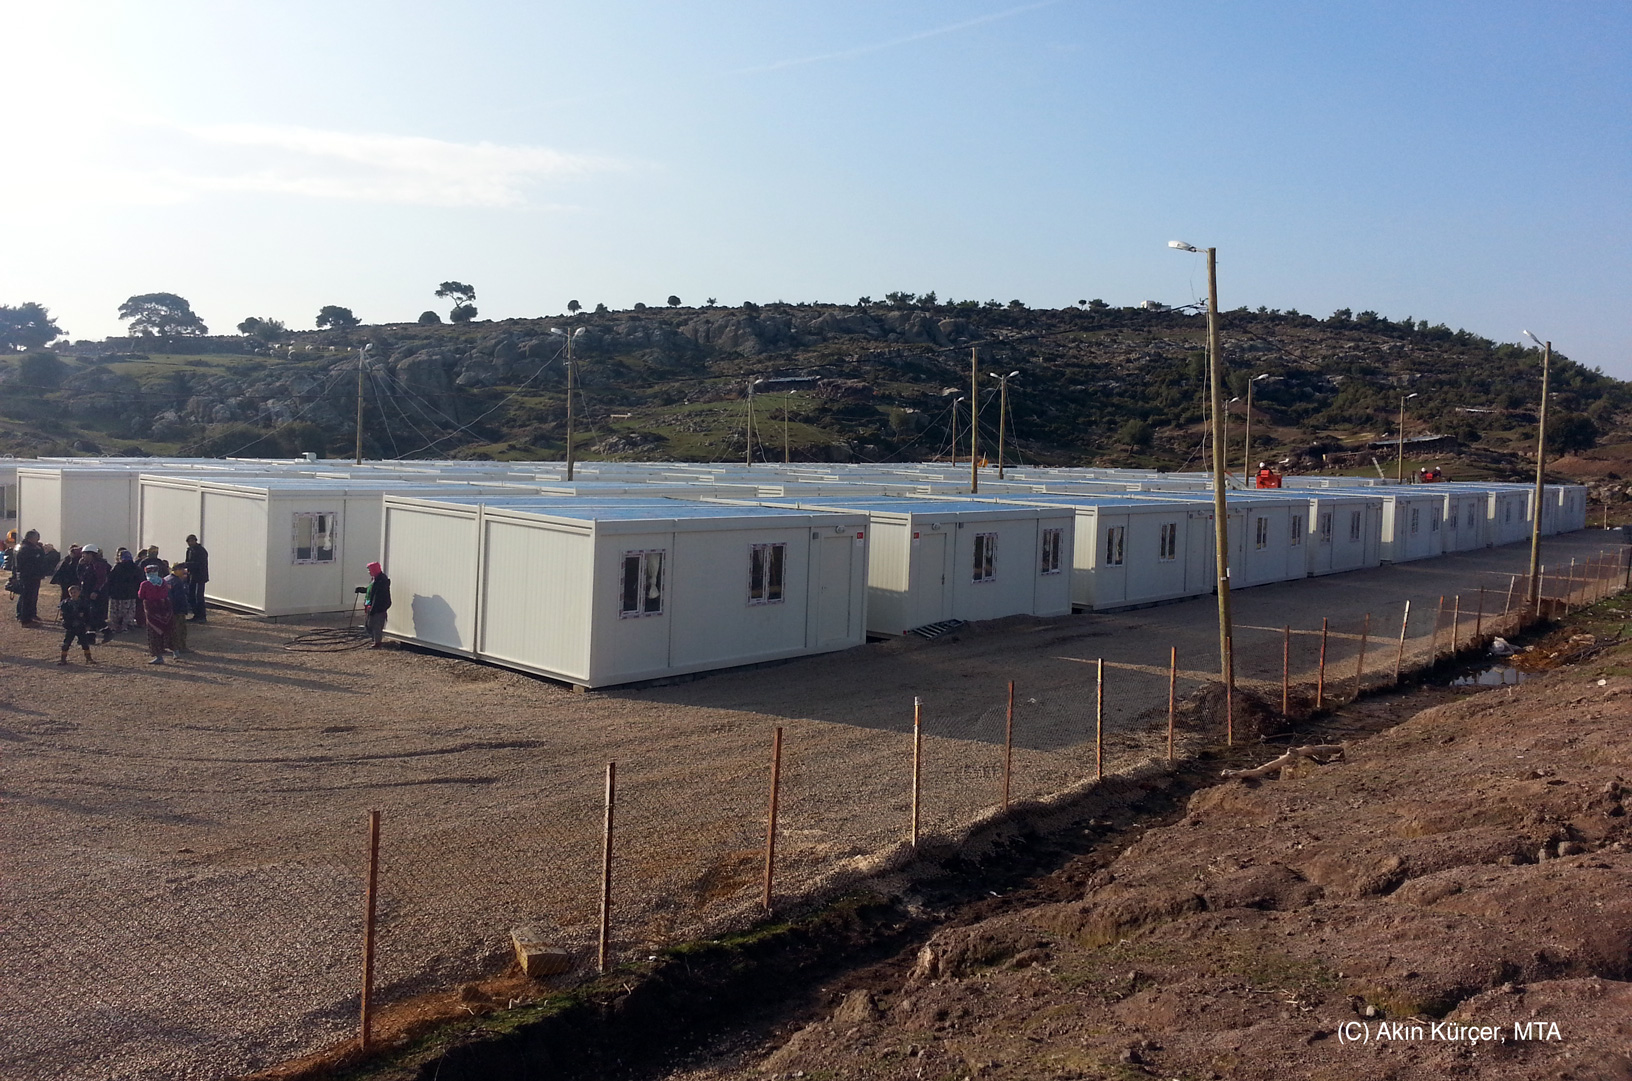 AFAD (Disaster and Emergency Management of Turkey), did an amazing job responding to residents of more than 500 damaged houses, and immediately built container housing.